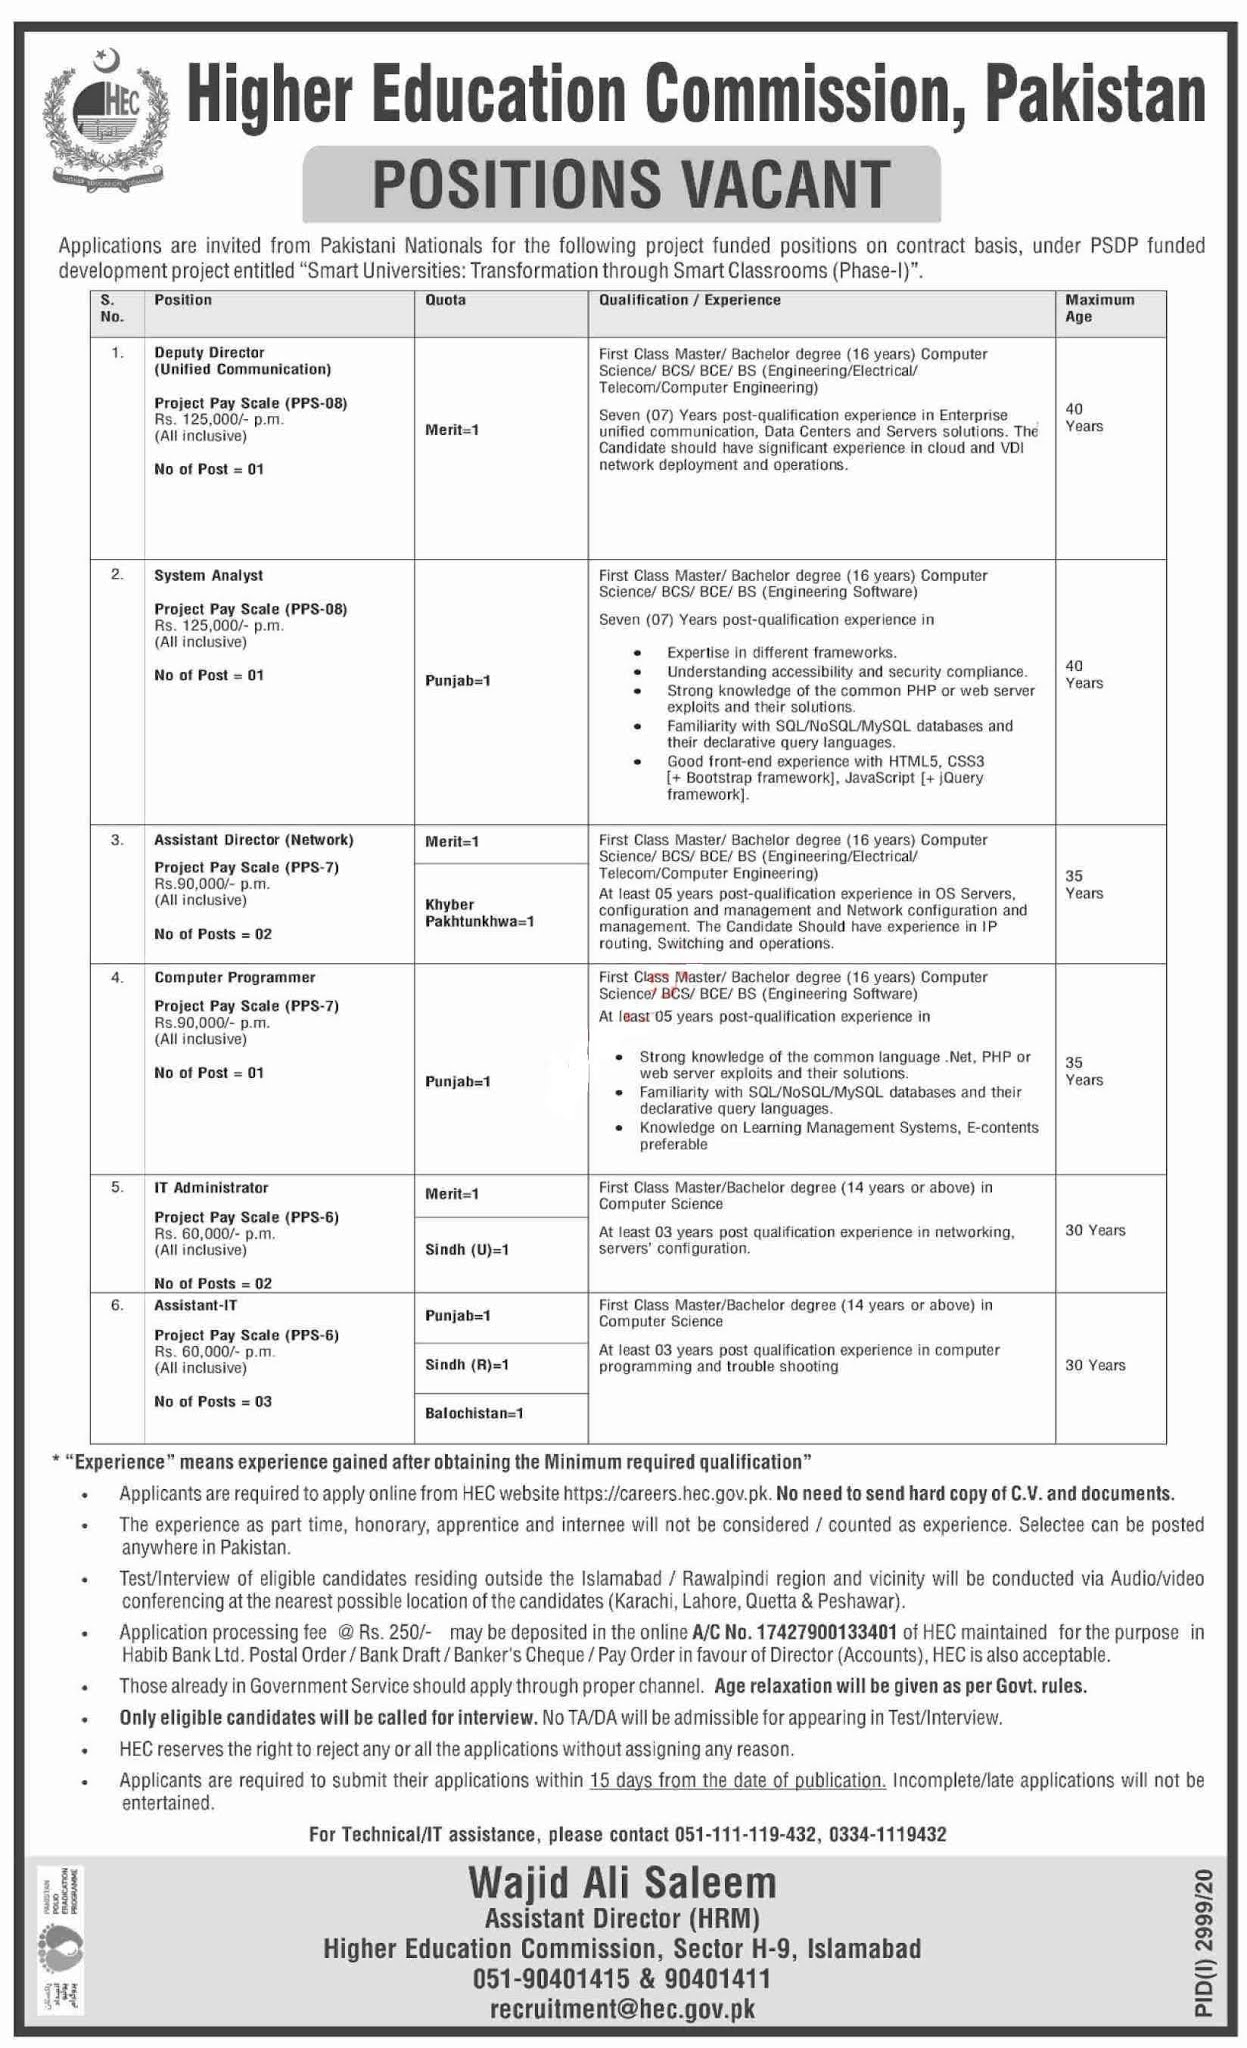 Higher Education Commission HEC Pakistan Jobs 2020 for Computer Programmer, IT Administrator, Assistant IT